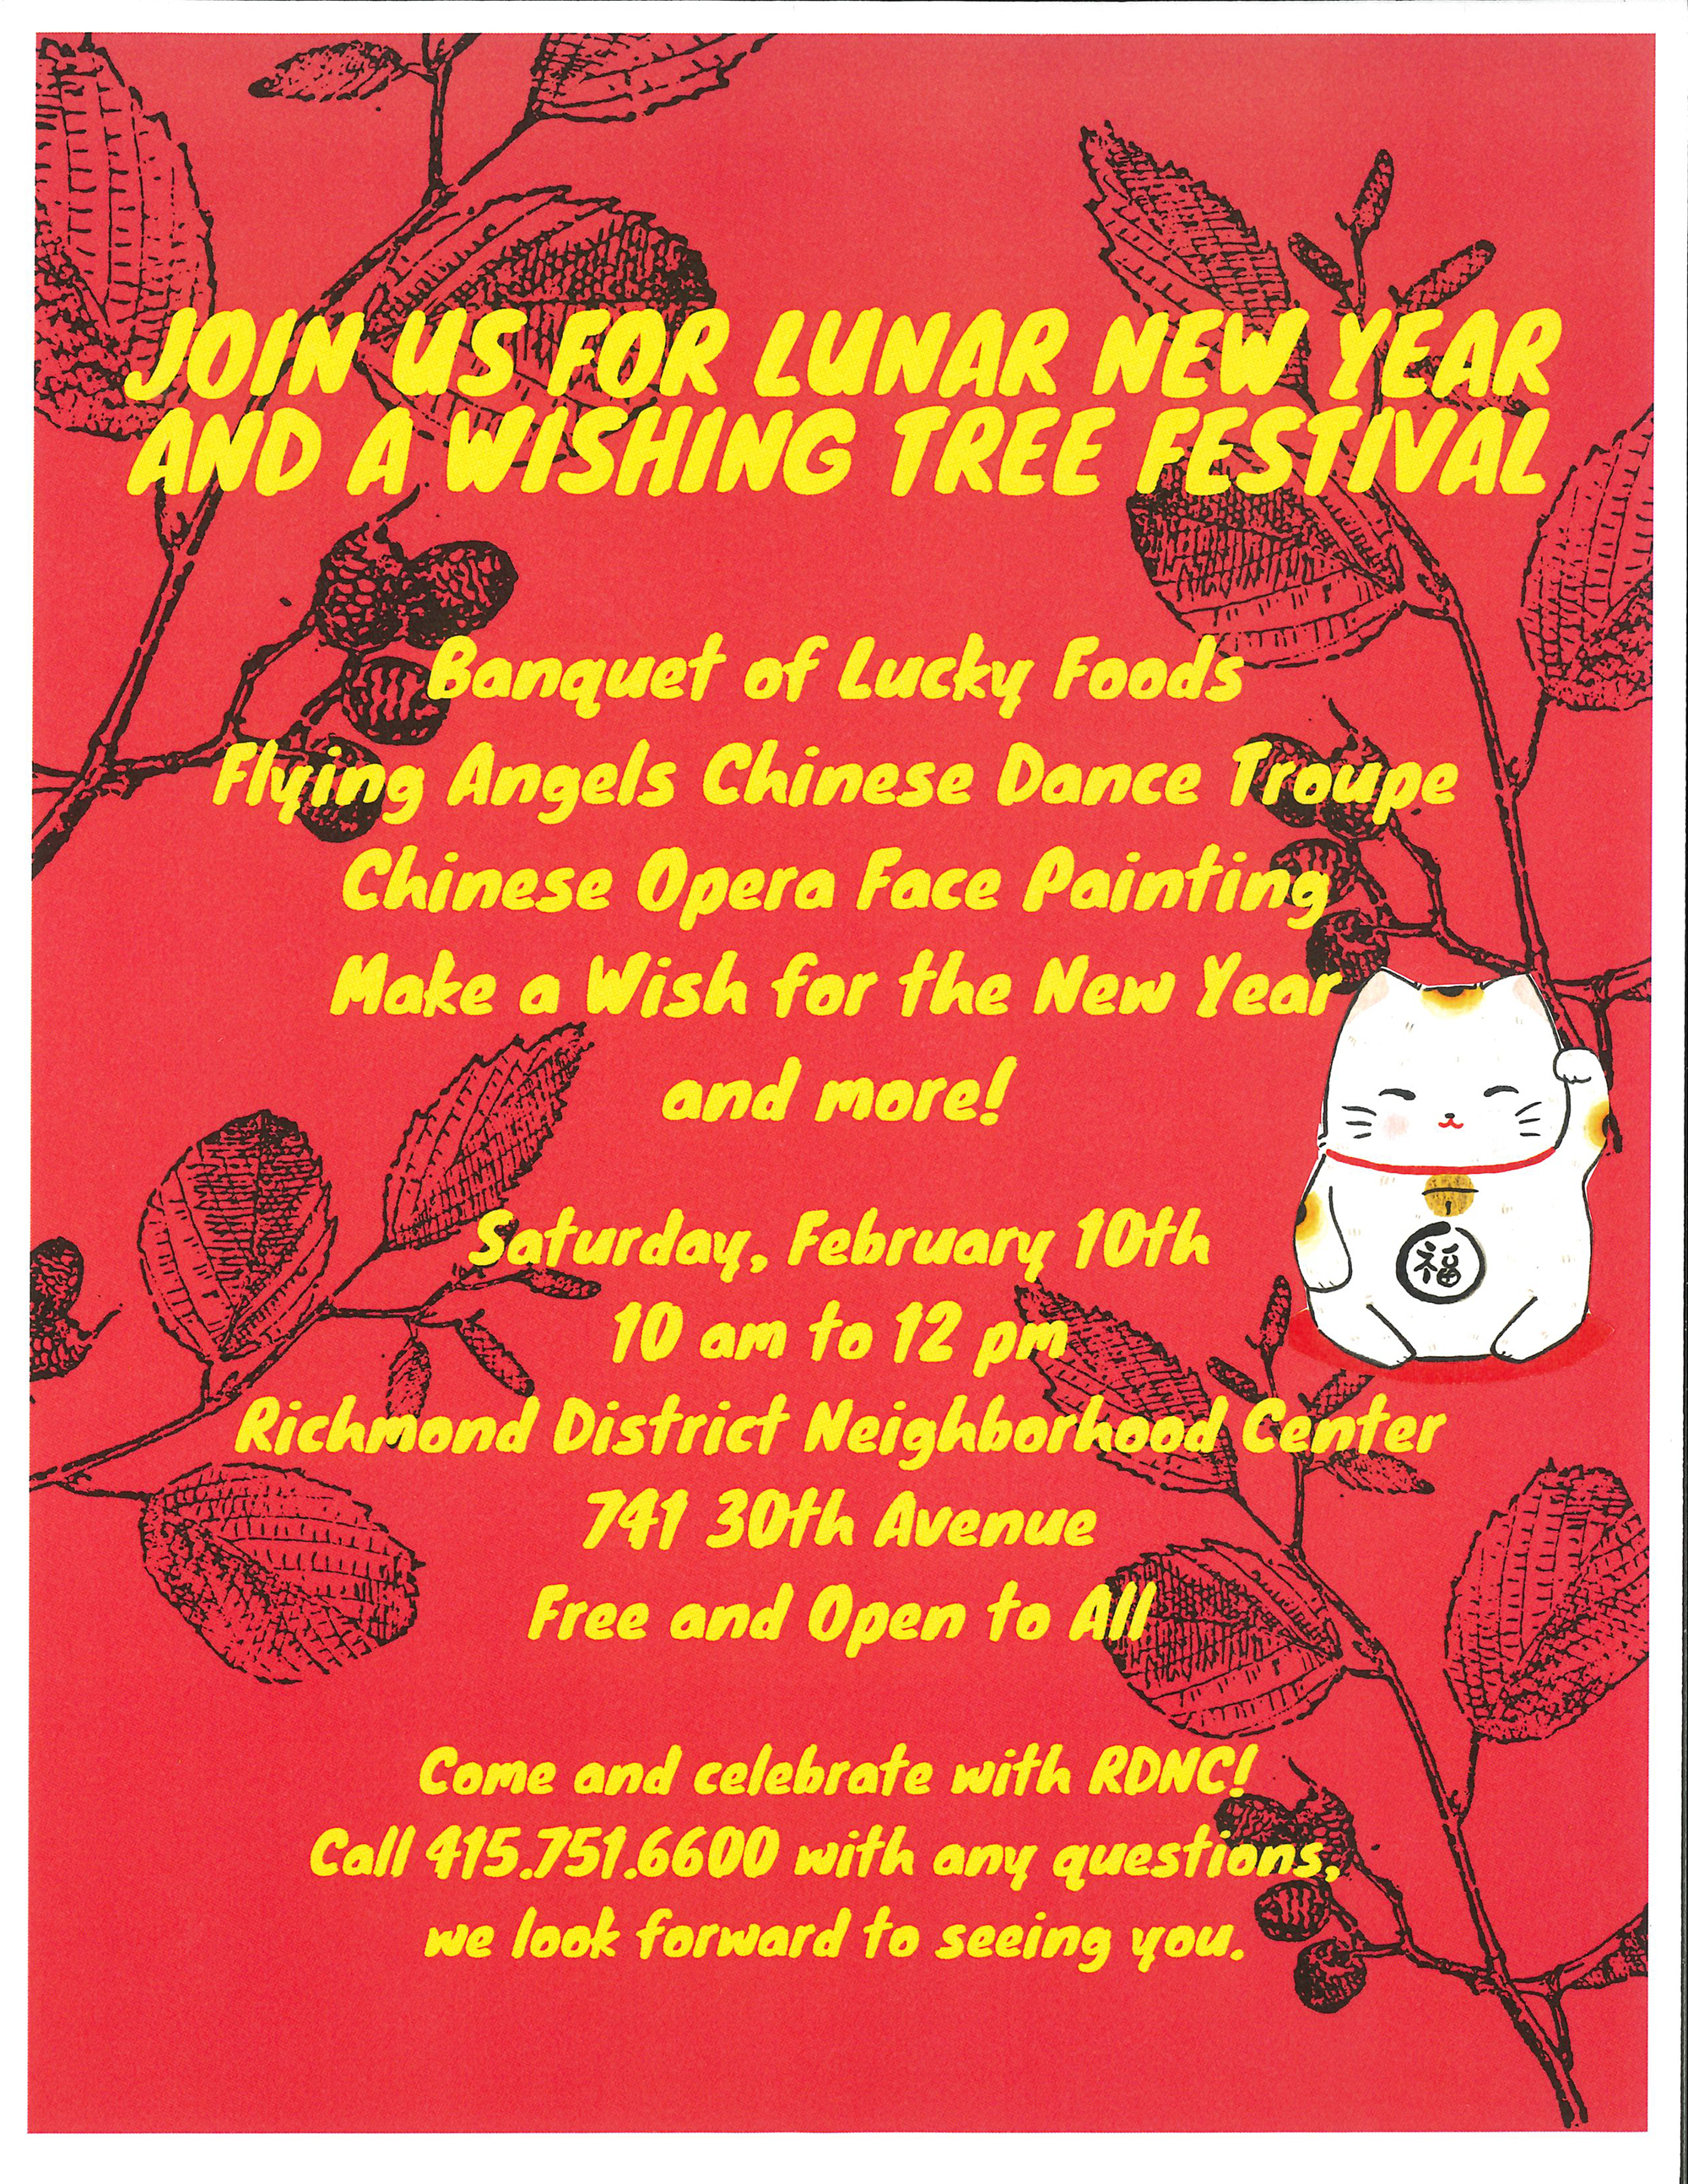 Saturday Celebrate The Lunar New Year With A Free Festival At The